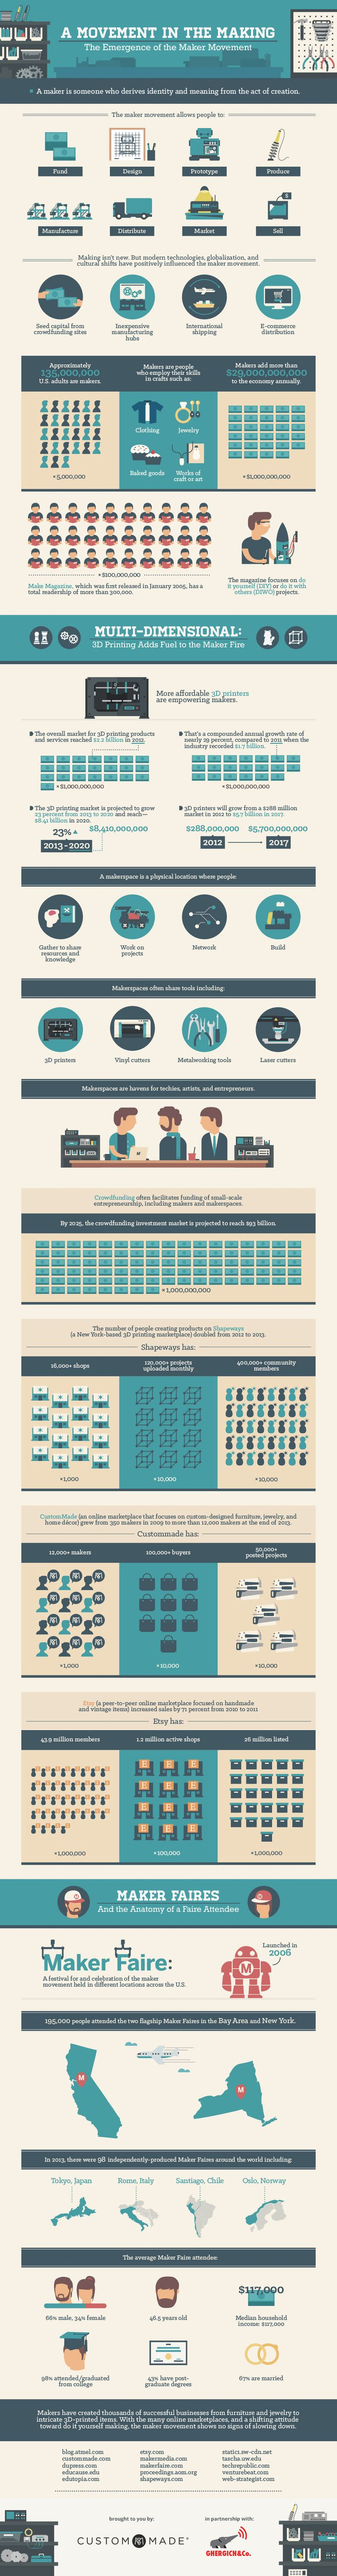 Emergence of the Maker Movement #infographic #MakerEd